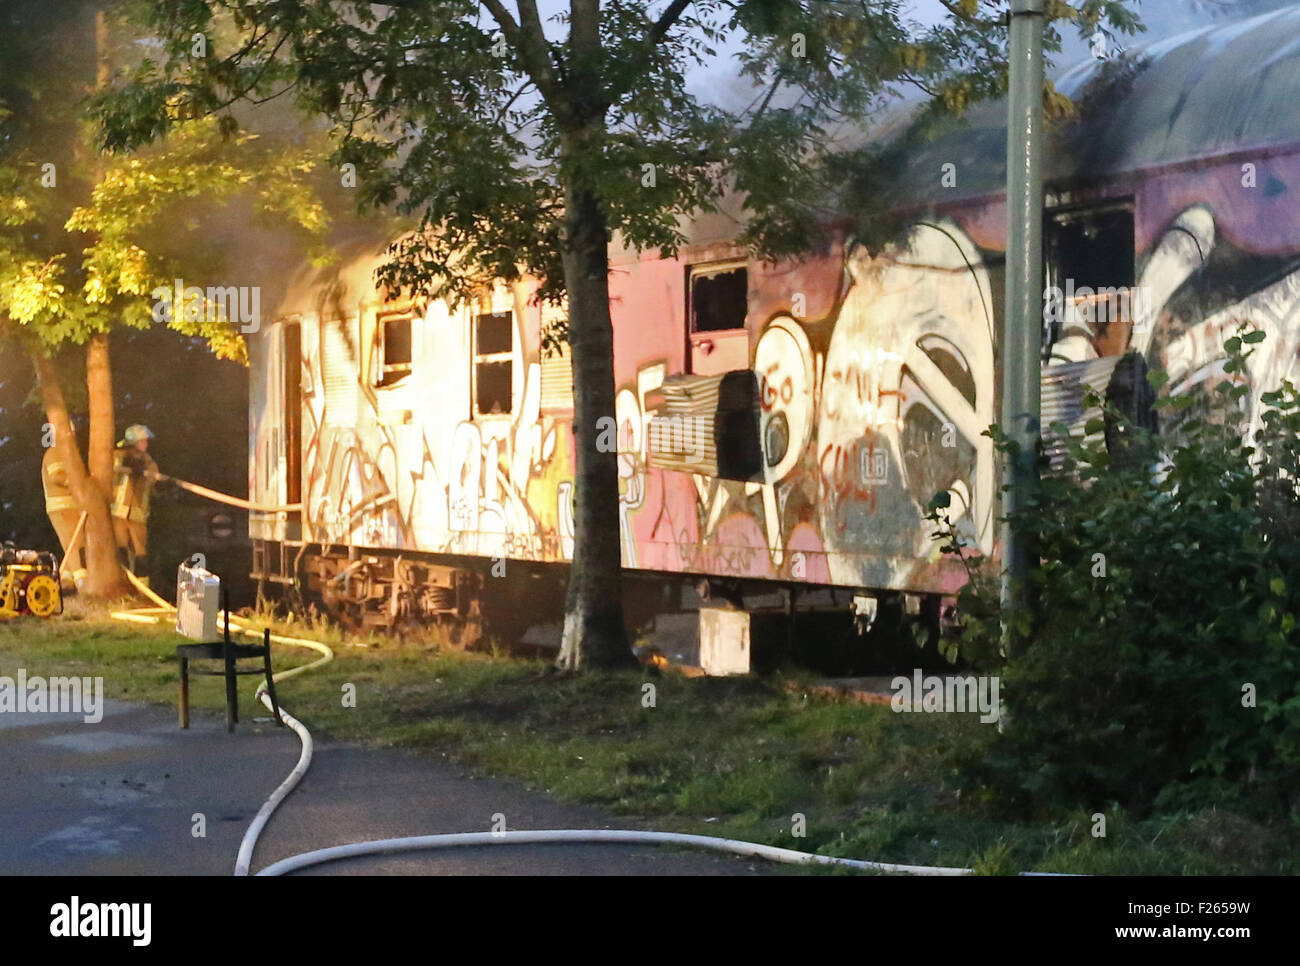 wiehl germany 12th sep 2015 the fire services put out a fire on